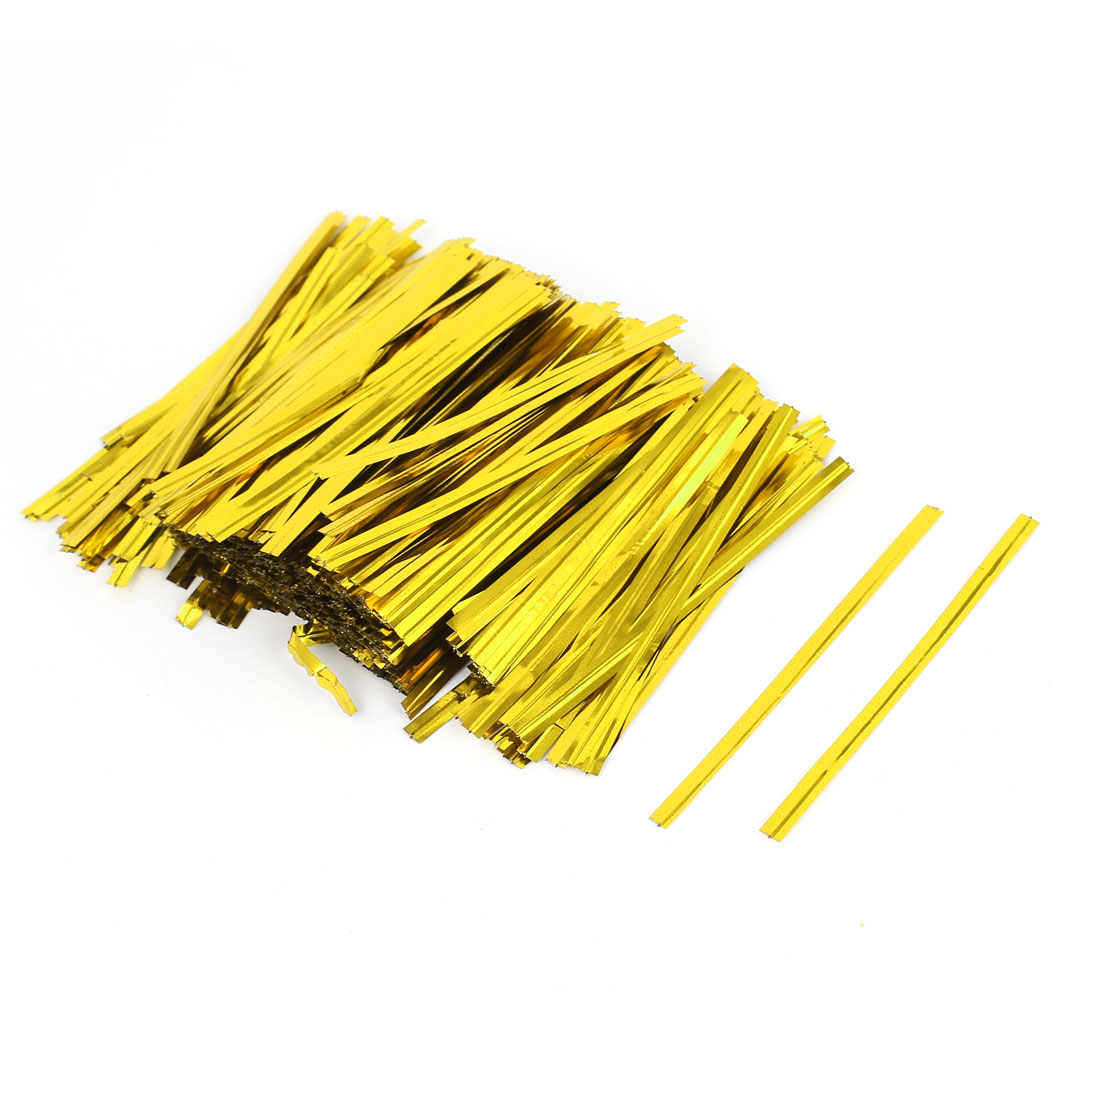 2400 Pcs Gold Tone 8cm Candy Bread Bags Packaging Twist Cable Tie